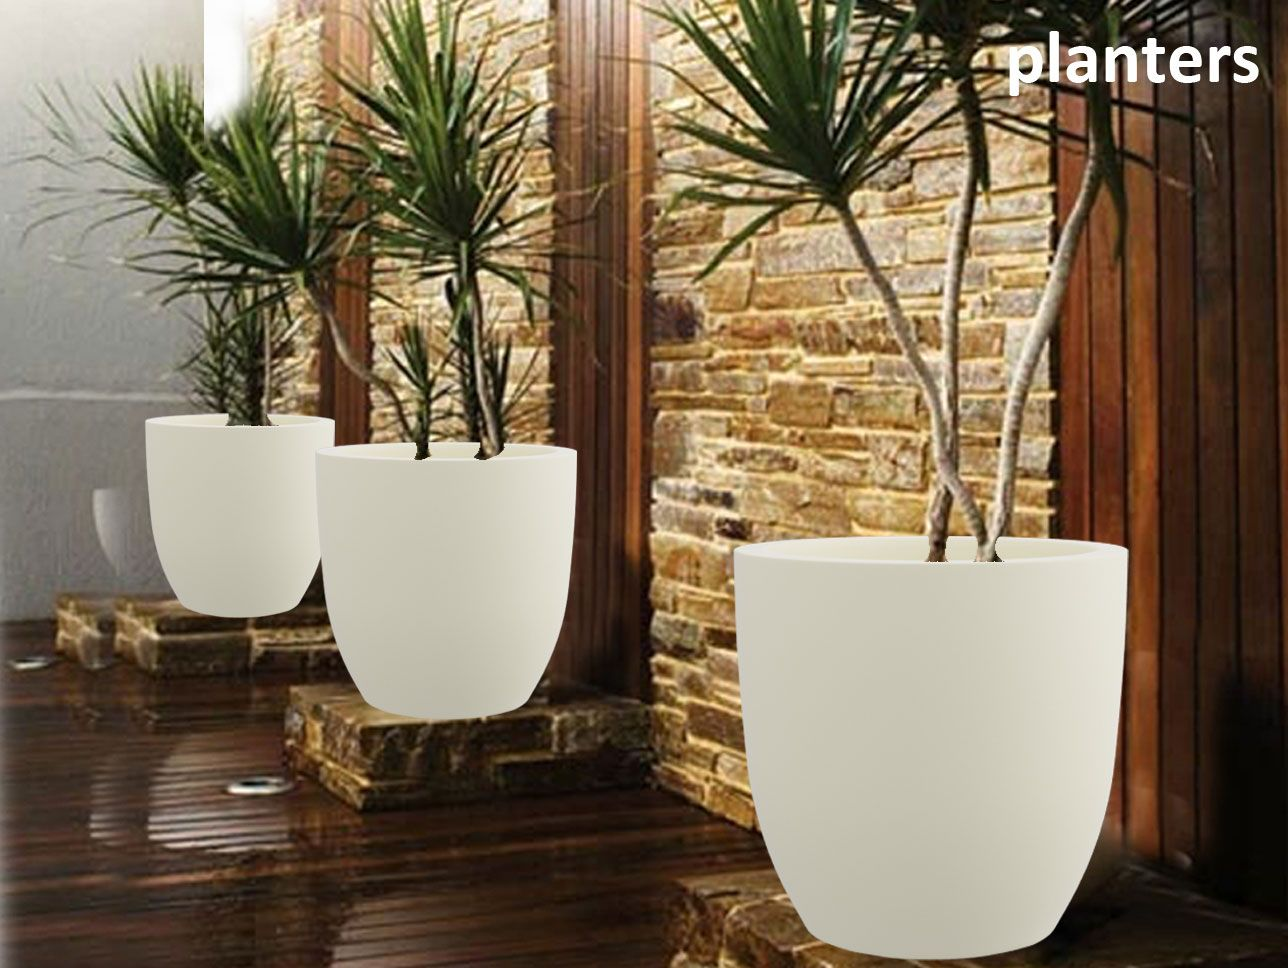 Yuccabe italia online shop for planter and vases decor yuccabe italia online shop for planter and vases reviewsmspy